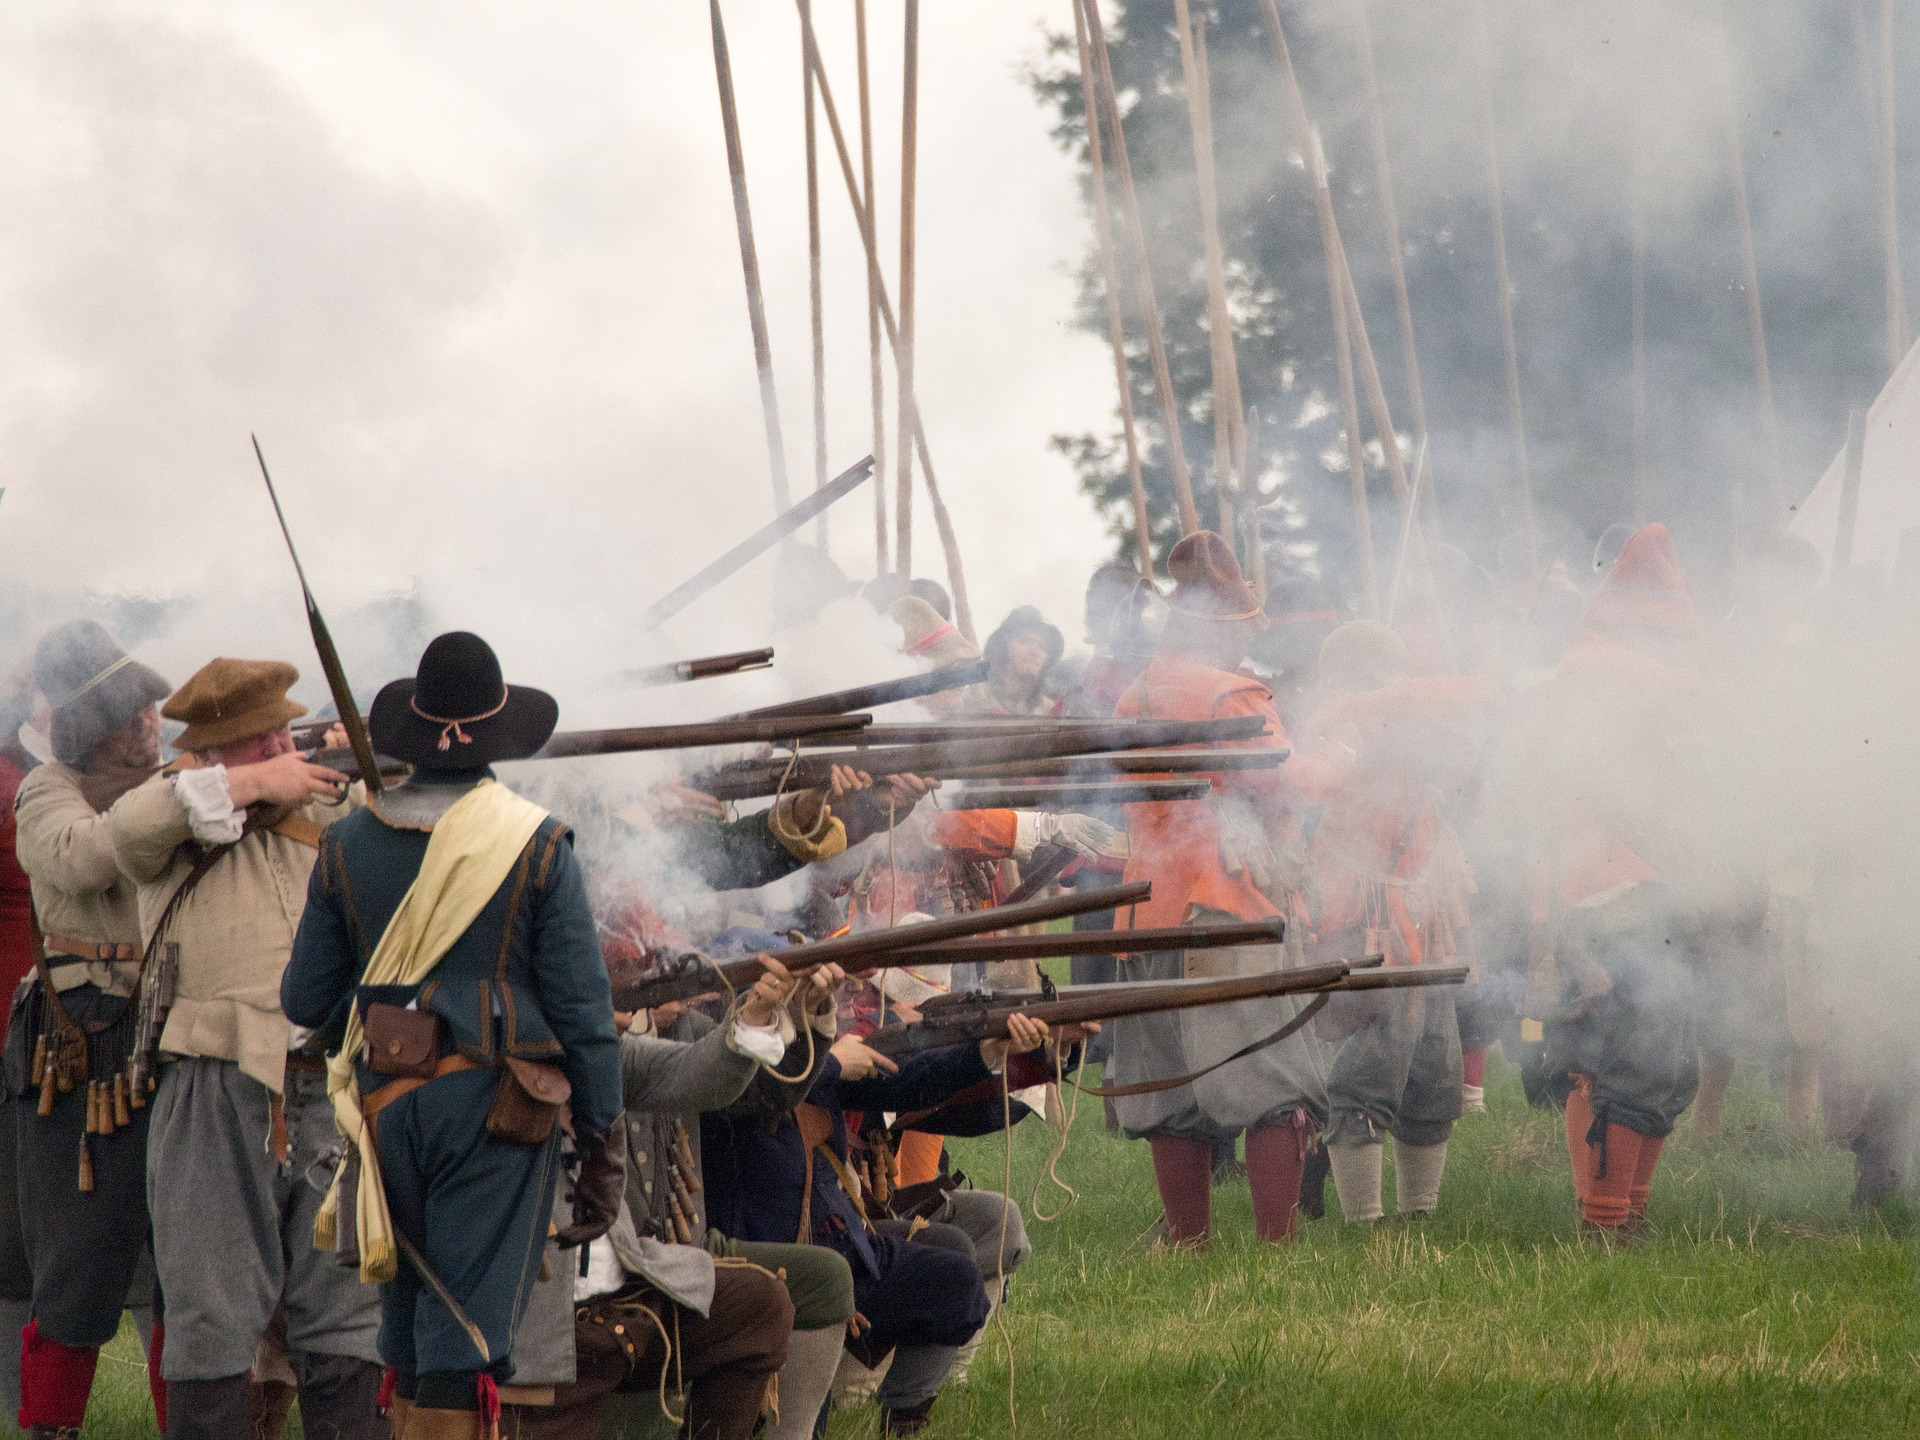 Reenactment of English Civil War battle